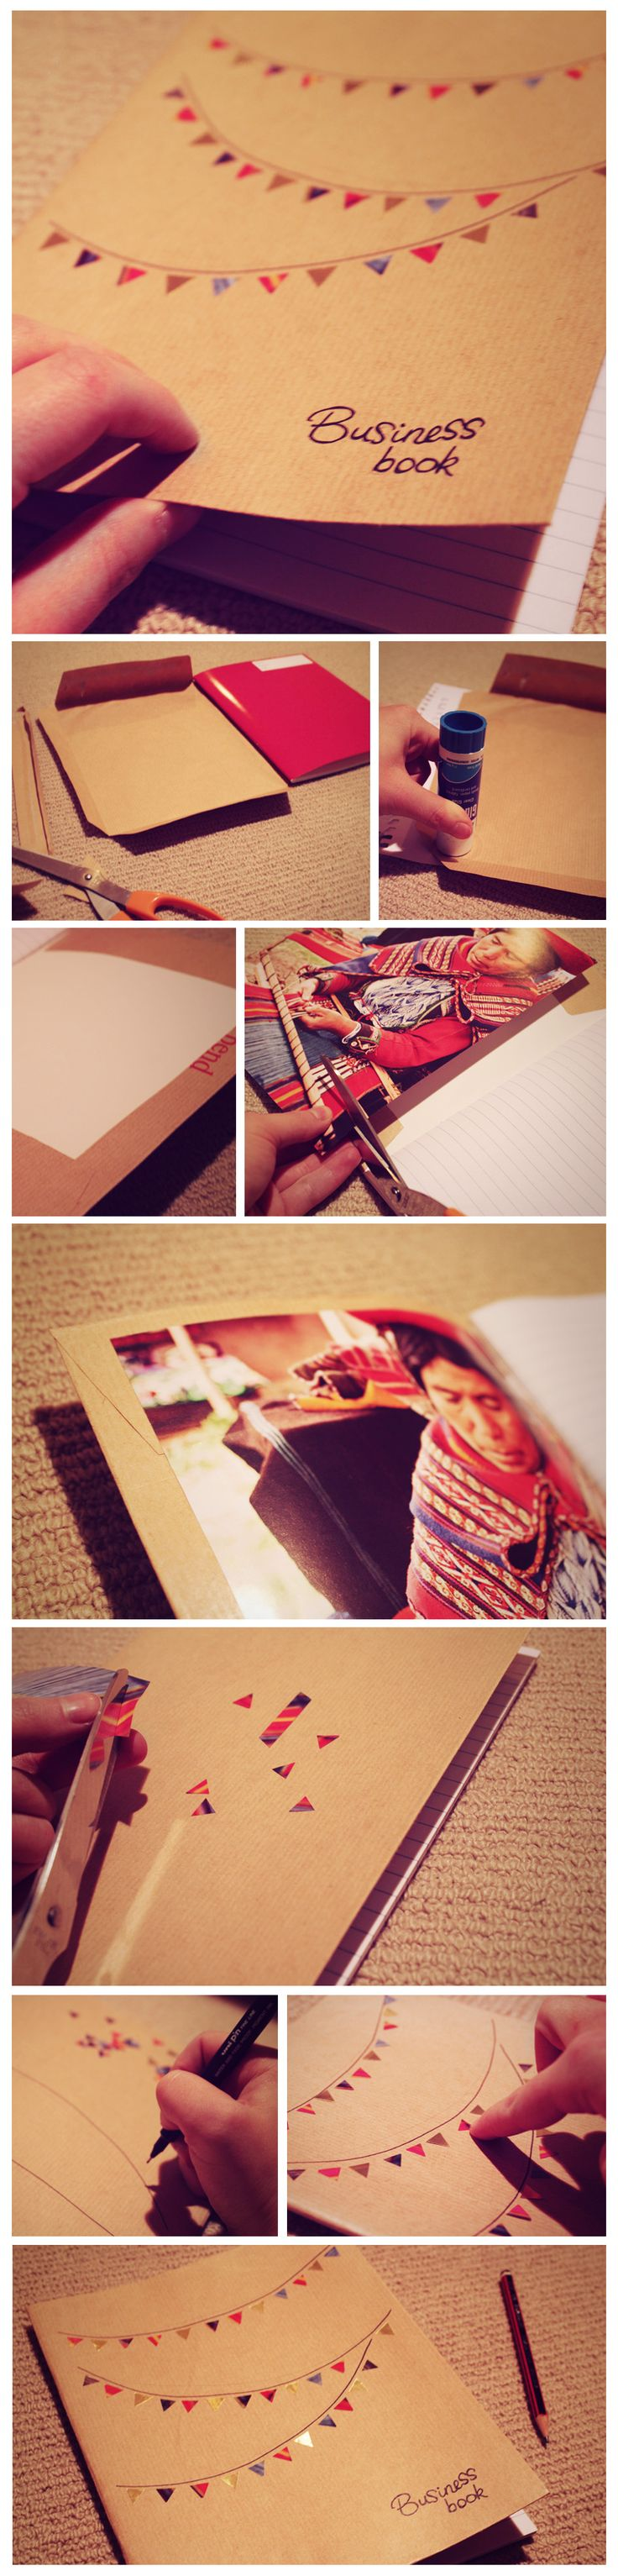 Diy notebook covers so your books and you will stand out at school - Diy Craft Idea Gorgeously Simple And Elegant